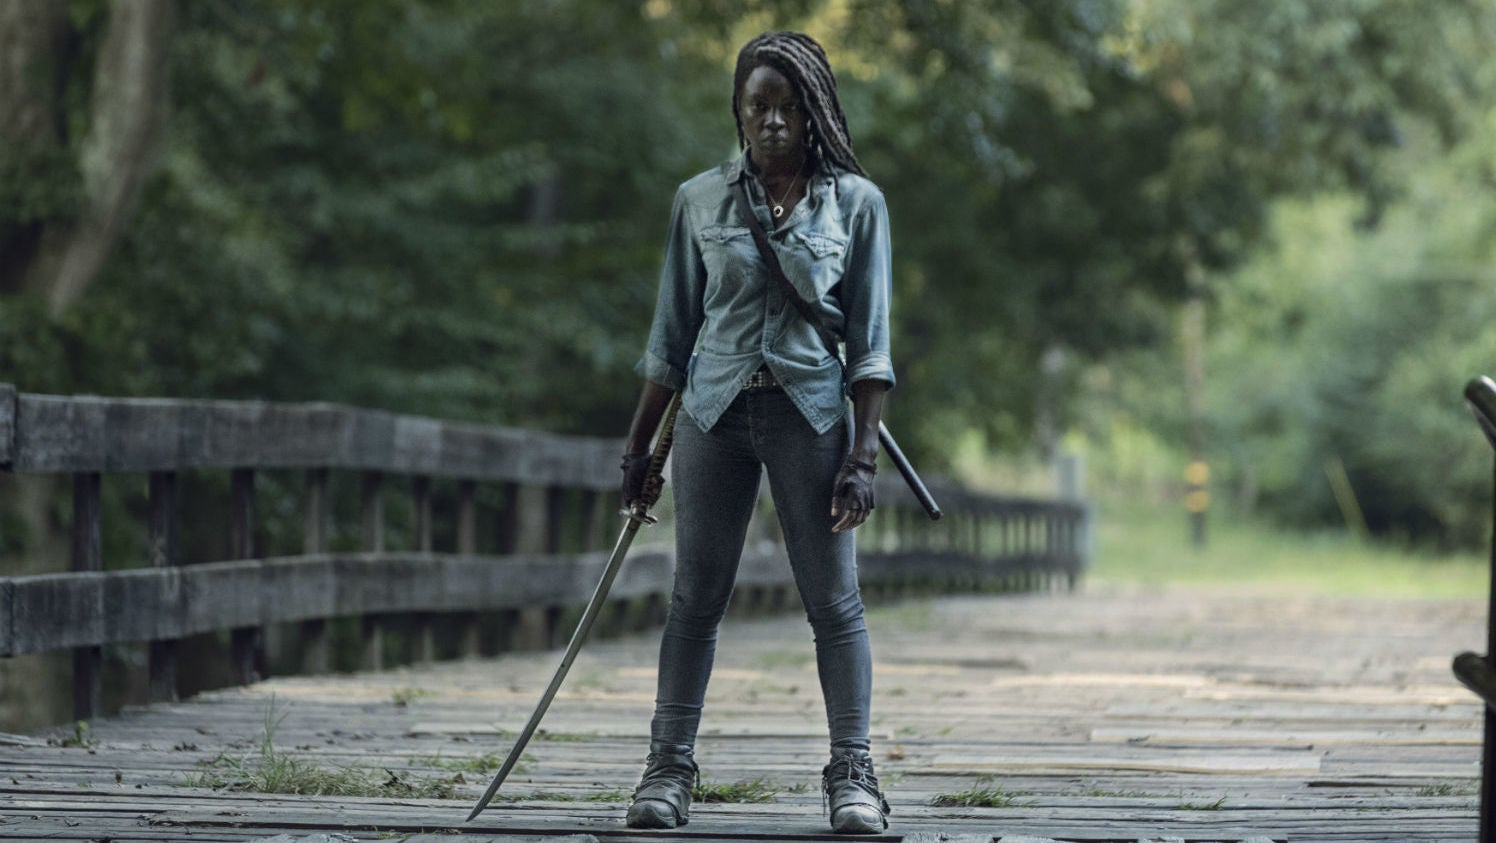 The Walking Dead's Danai Gurira Is Making Her Inevitable Exit From The Zombie Series